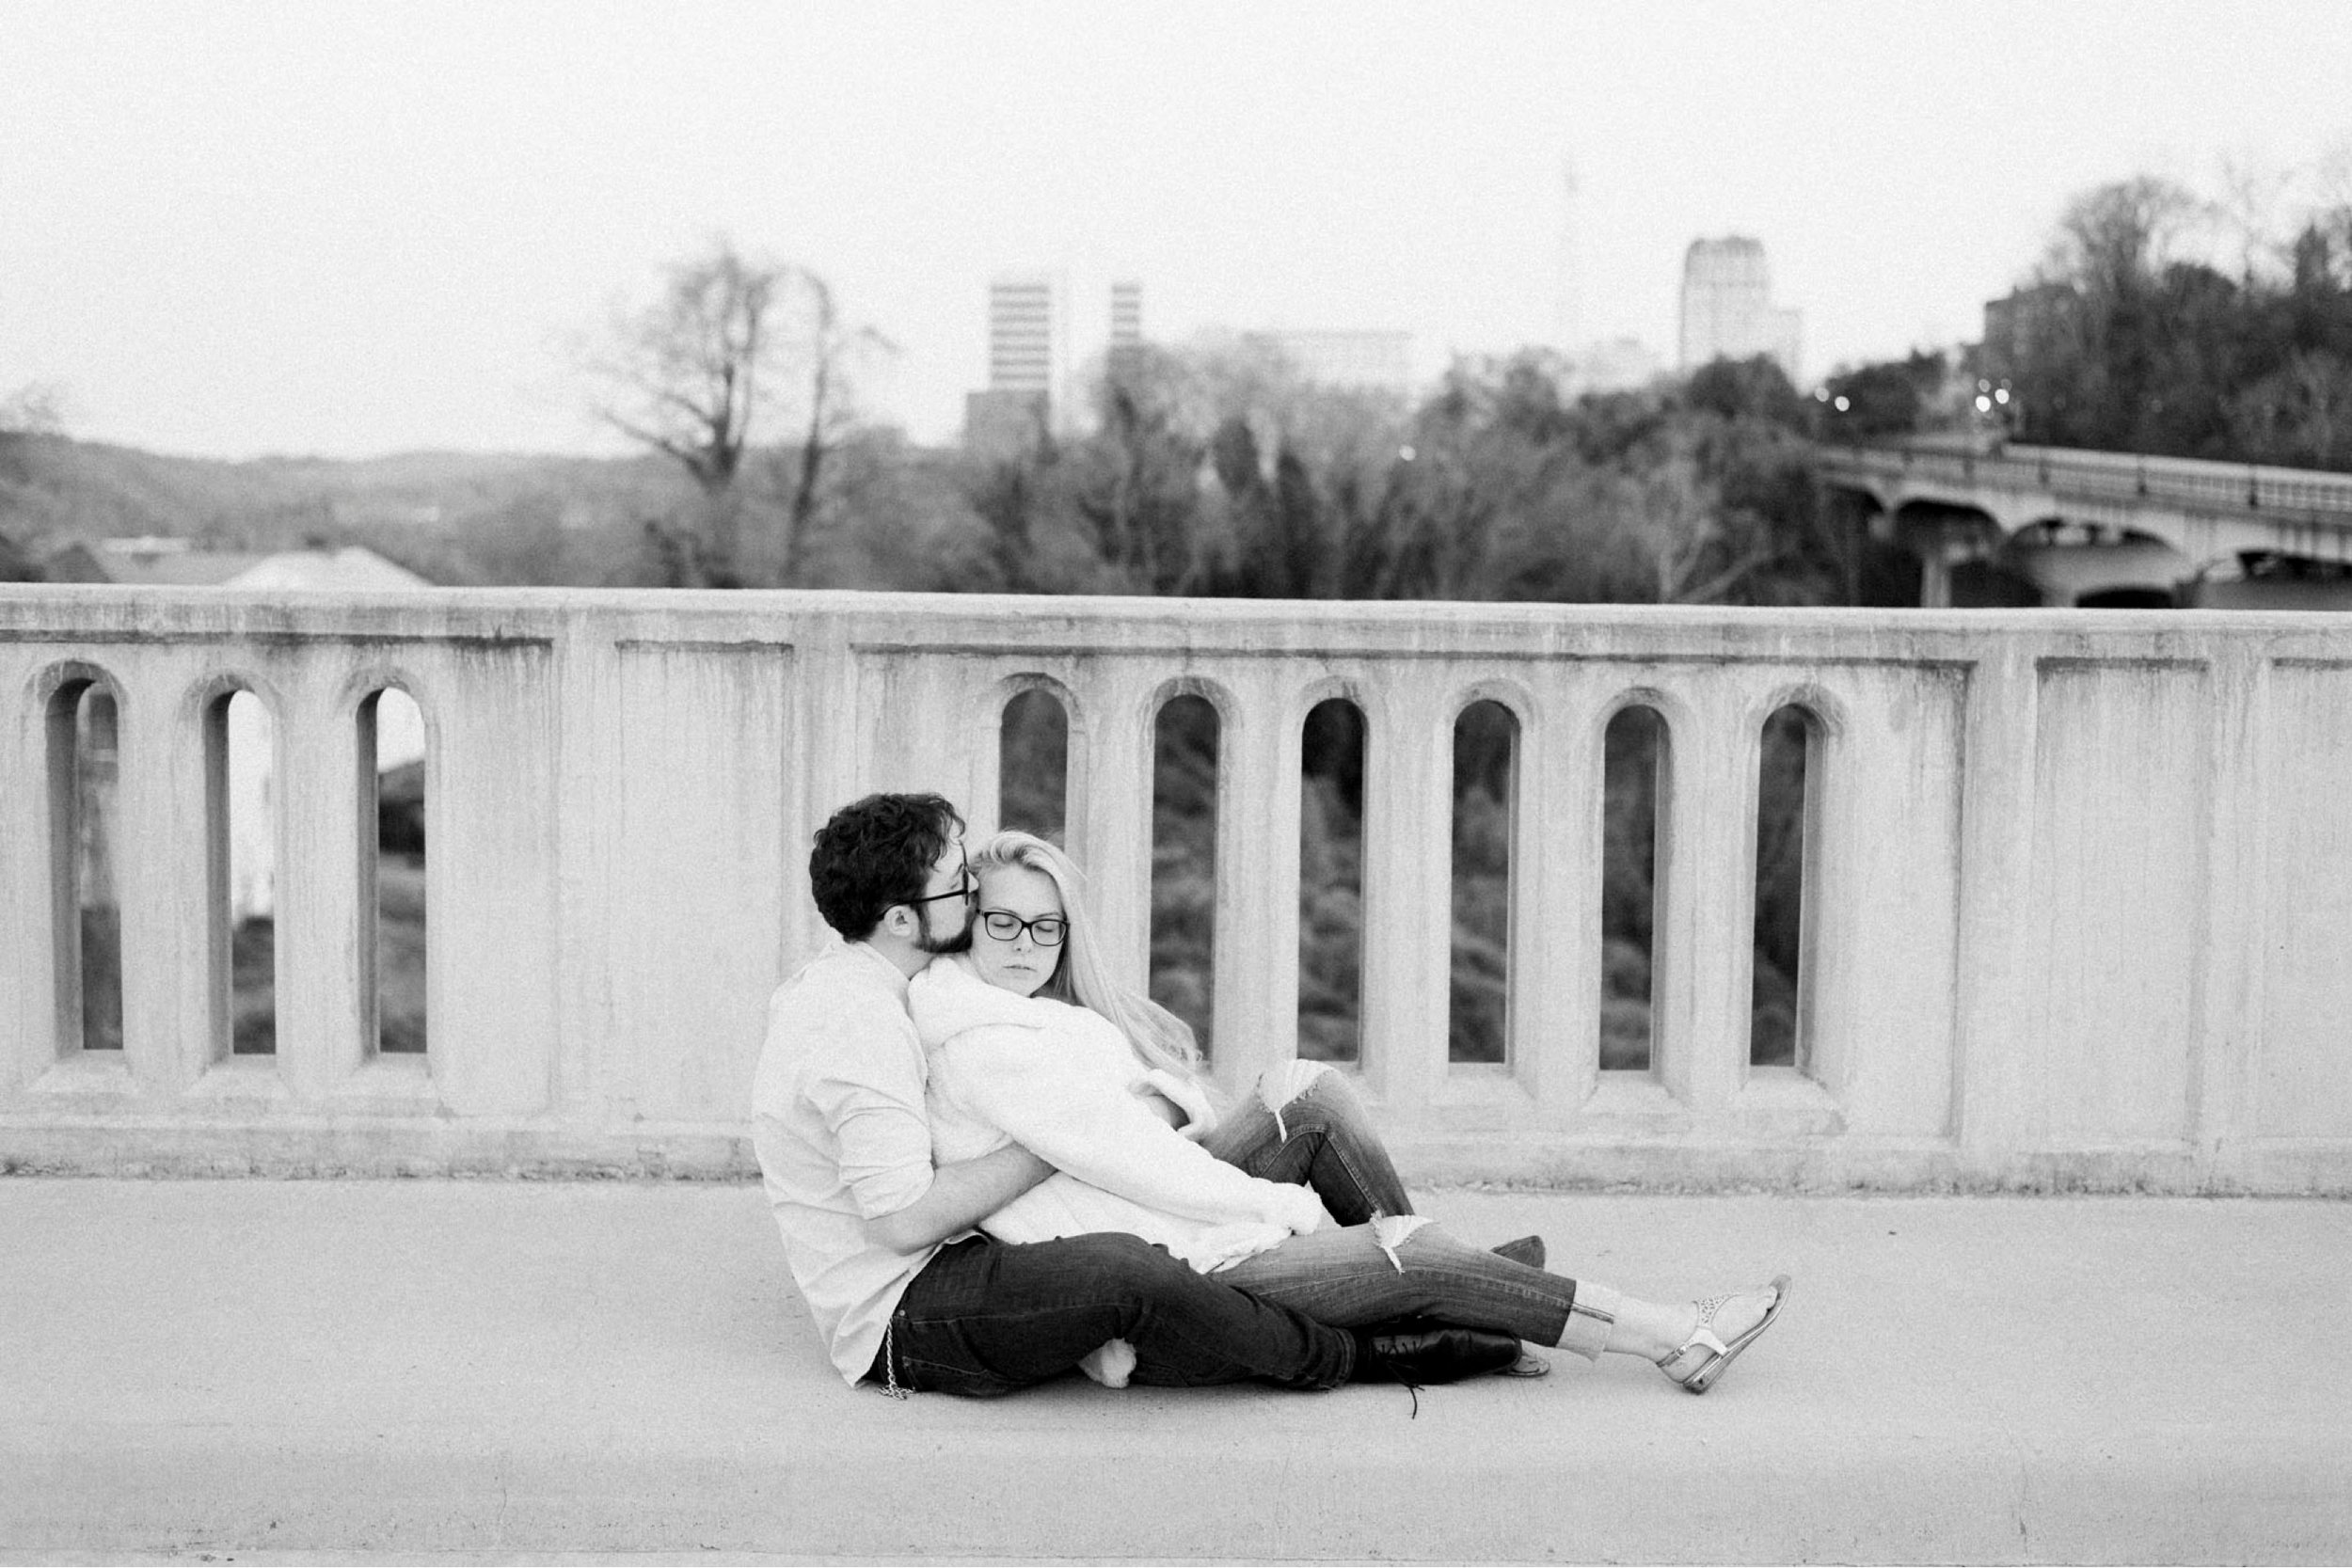 LaunceTarah_VirginiaWeddingPhotographer_EngagementSession_LynchburgVA_DowntownLynchburg_SpringEngagement 35.jpg